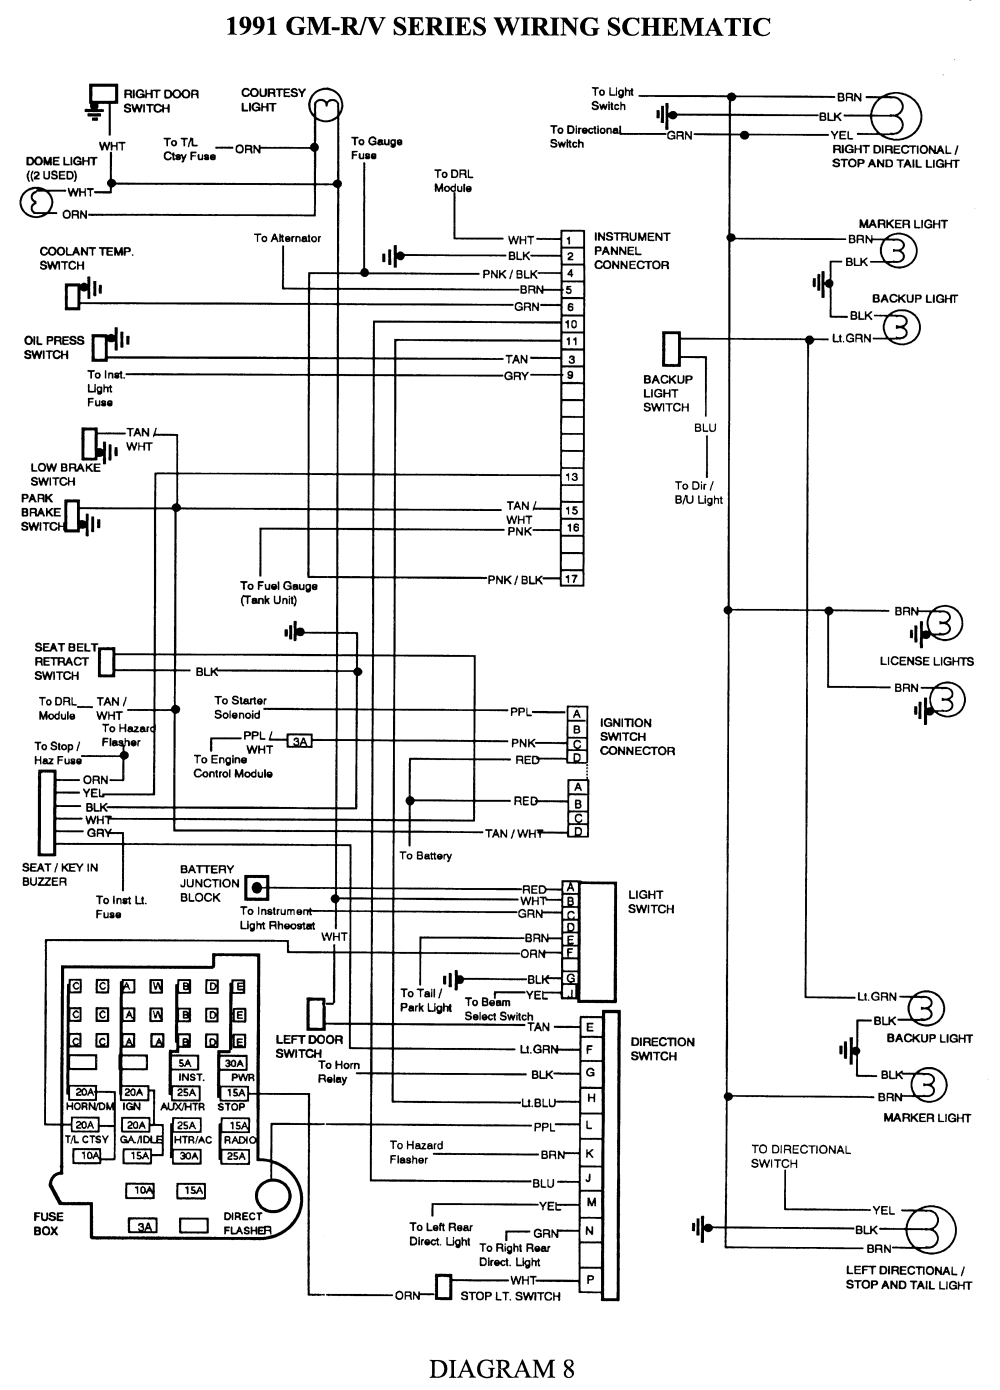 DIAGRAM] 2001 Blazer Wiring Diagram FULL Version HD Quality Wiring Diagram  - SLAMMED1SUSPENSION.MAI-LIE.FRslammed1suspension.mai-lie.fr